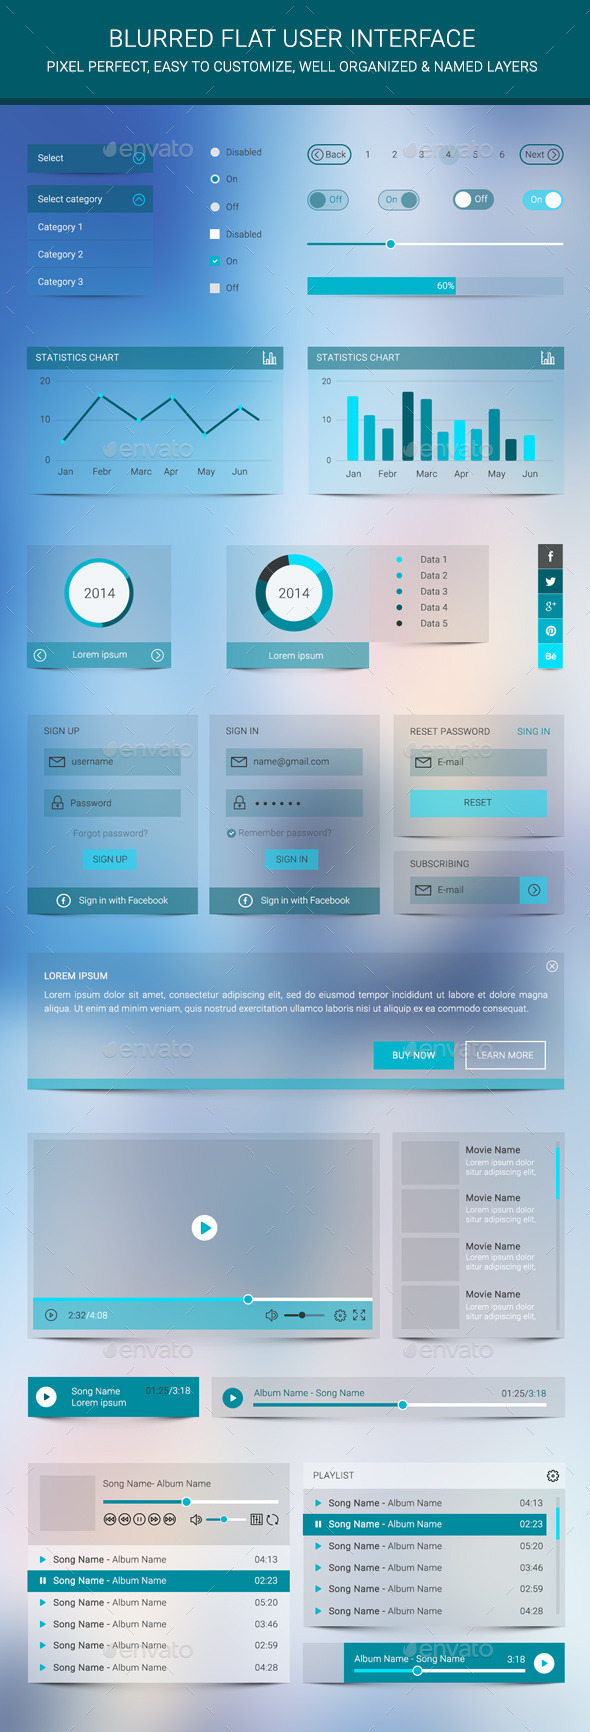 Blurred Flat User Interface